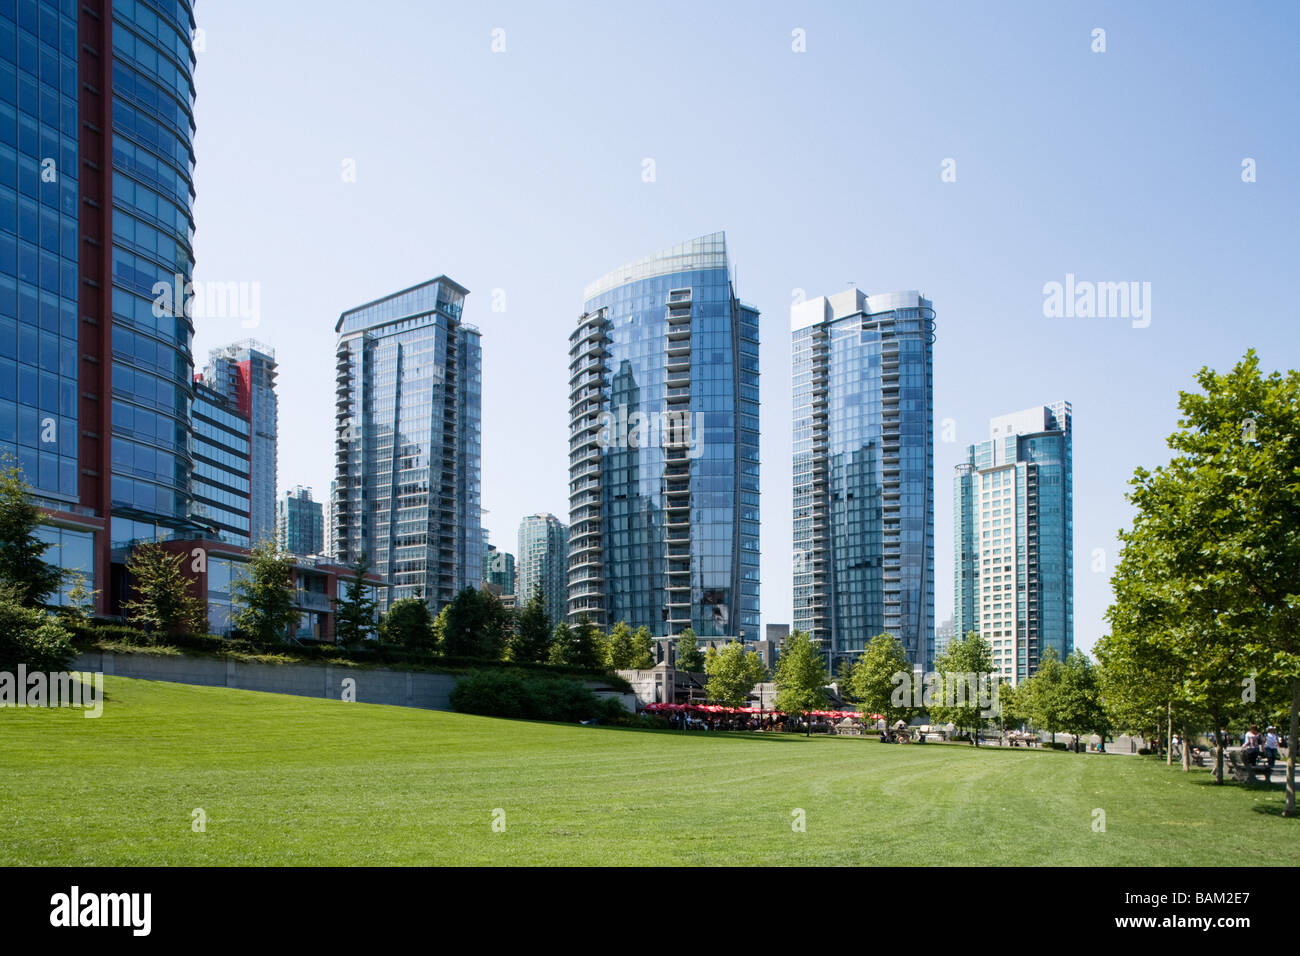 Condo towers in vancouver - Stock Image